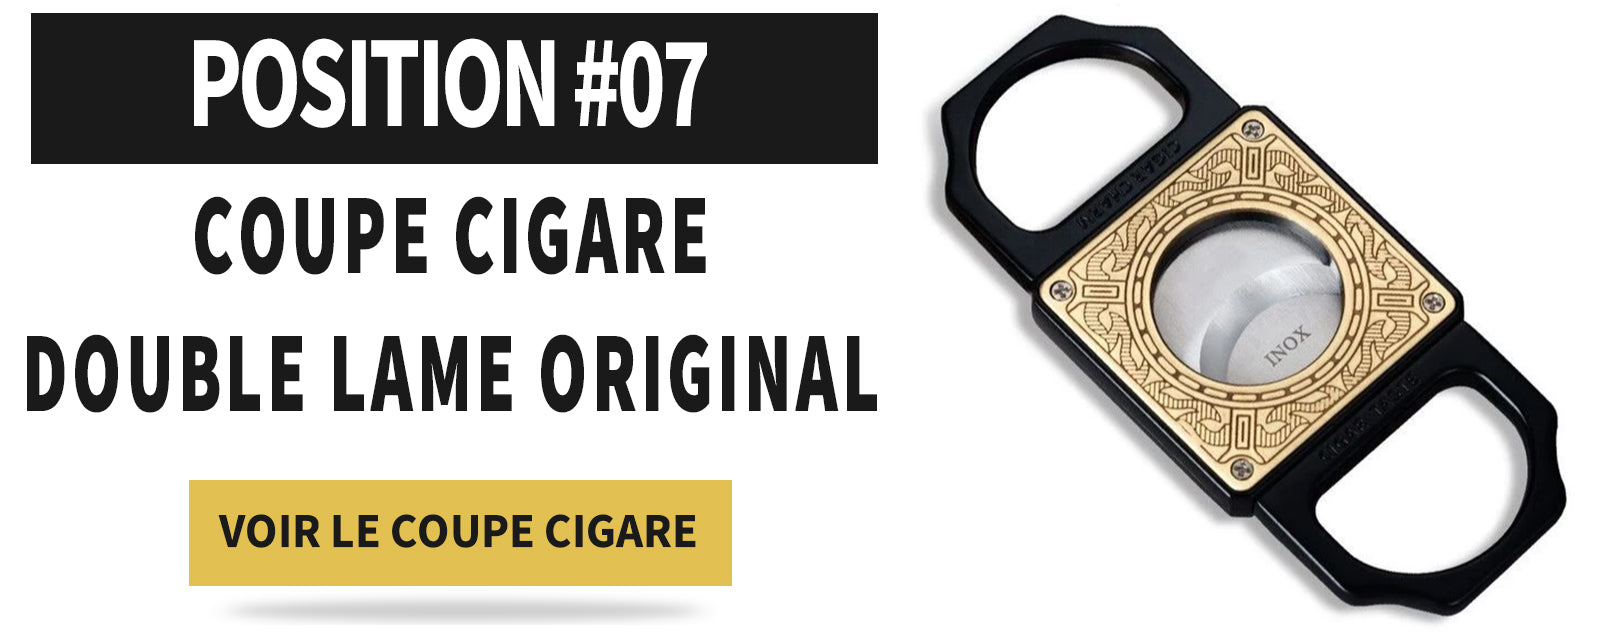 Coupe CIgare guillotine double lame original